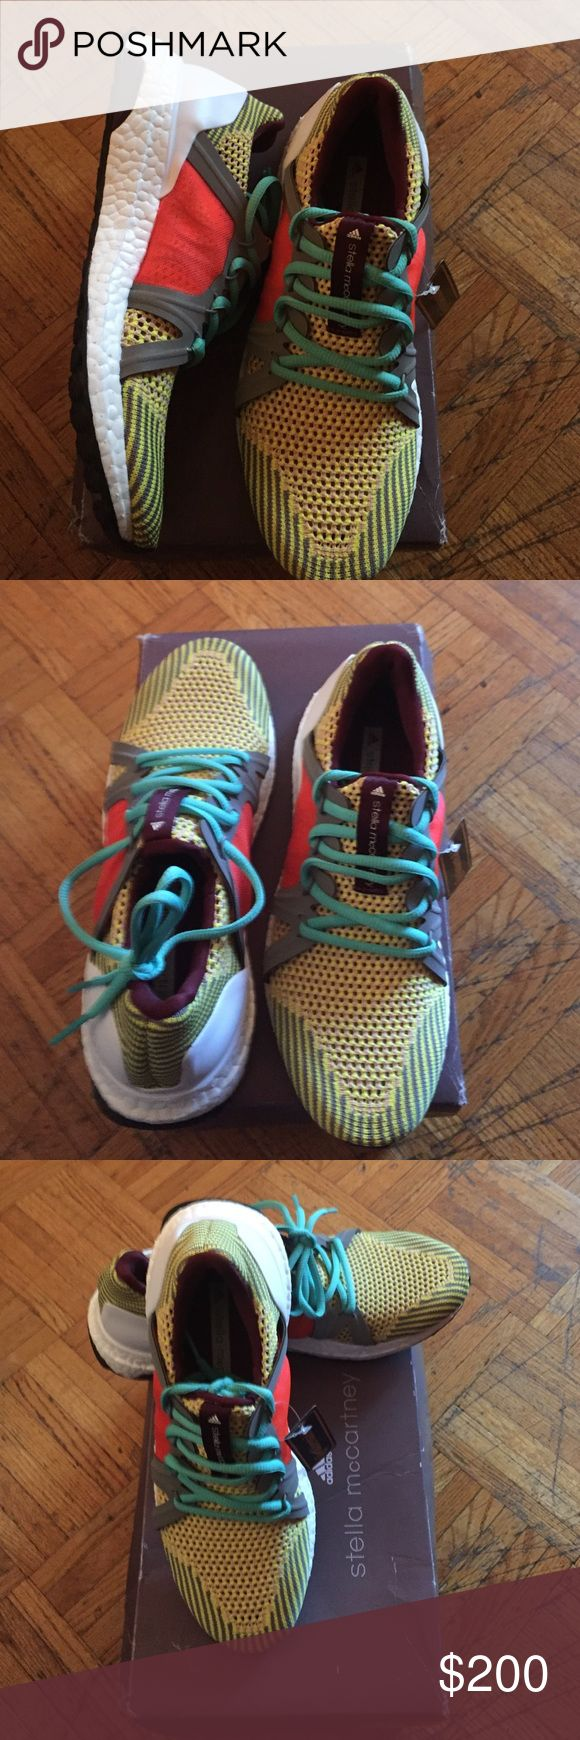 ADIDAS STELLA MCCARTNEY ULTRA BOOST WOMEN SHOES Brand new in the box. ULTRA BOOST SHOES STANDOUT RUNNING SHOES FEATURING BOOST AND DESIGNED BY STELLA MCCARTNEY. Adidas Shoes Athletic Shoes